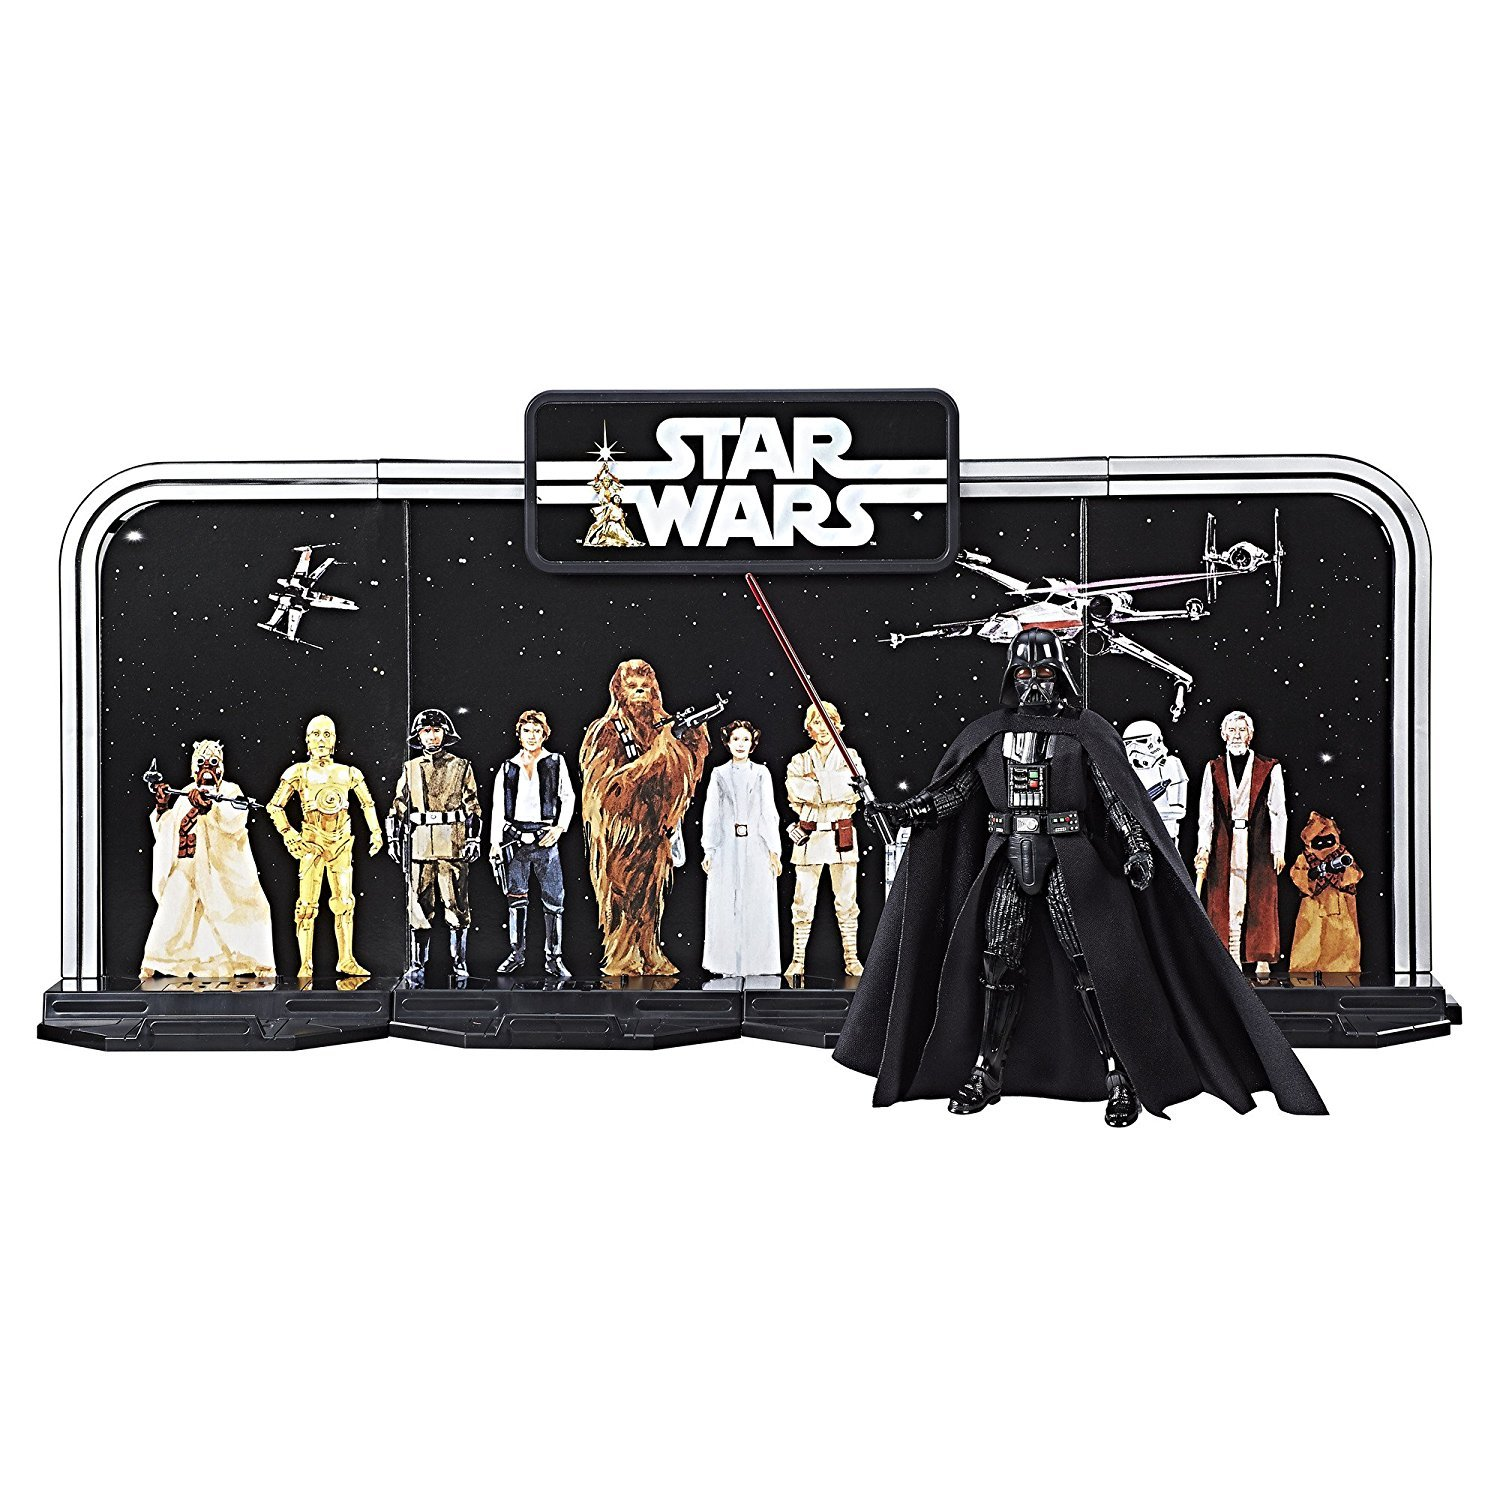 Star Wars Black Series 40th Anniversary Diorama w/Darth Vader 6 Action Figure